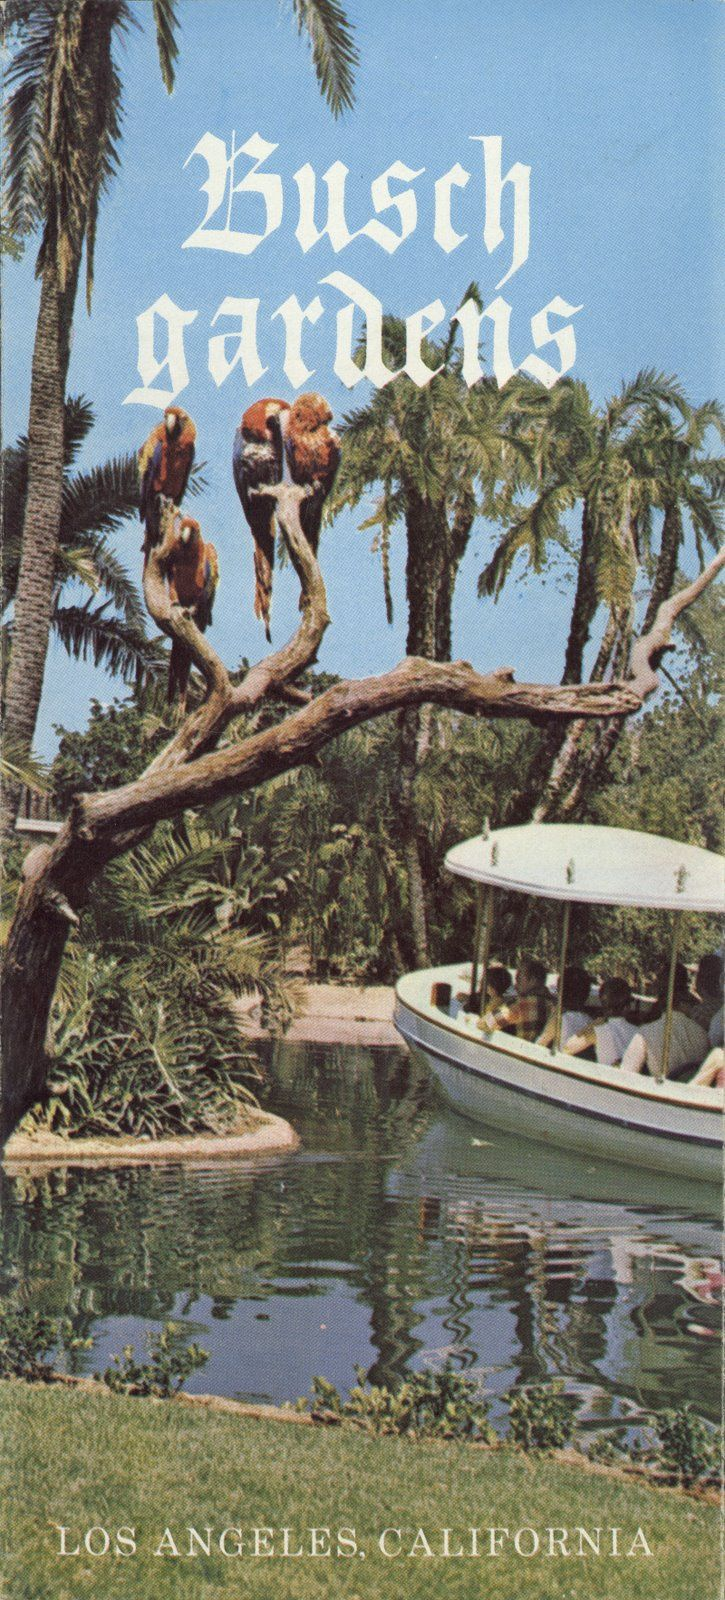 Busch Gardens, Van Nuys, California, Opened 1966   It Closed But The  Brewery Remains.